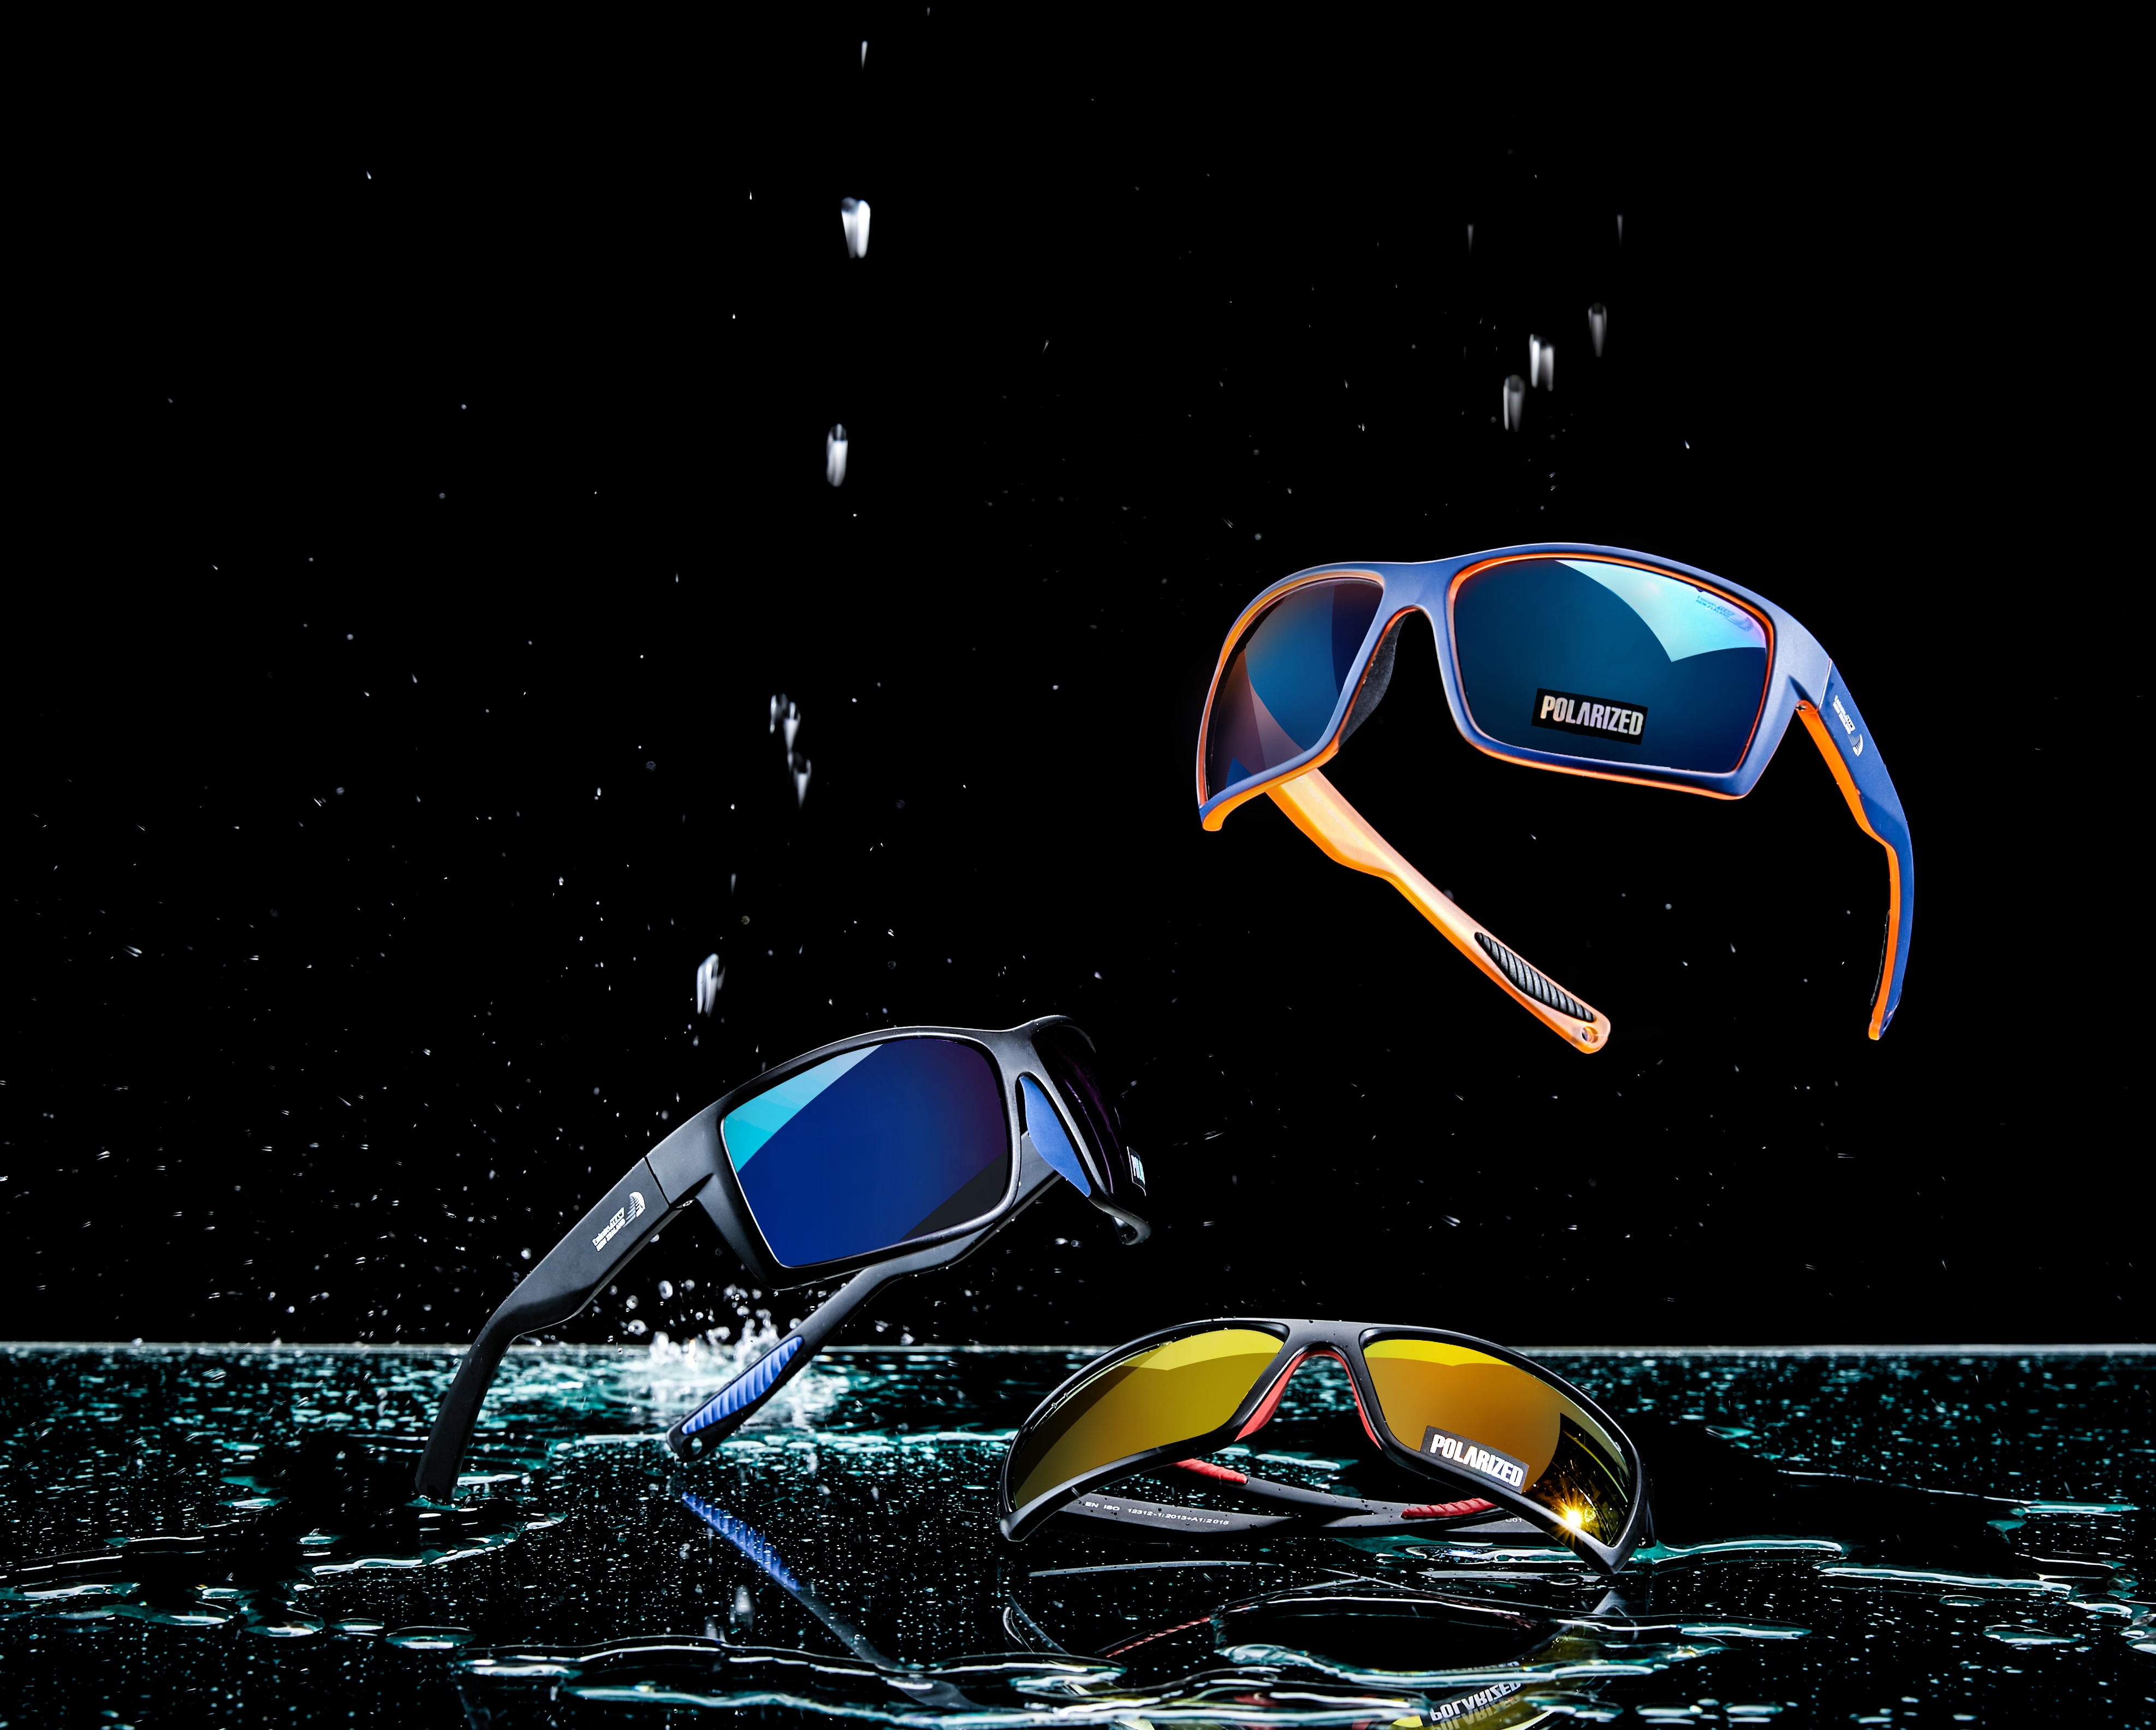 Tnz110 water sports driving sunglasses for outdoor activities